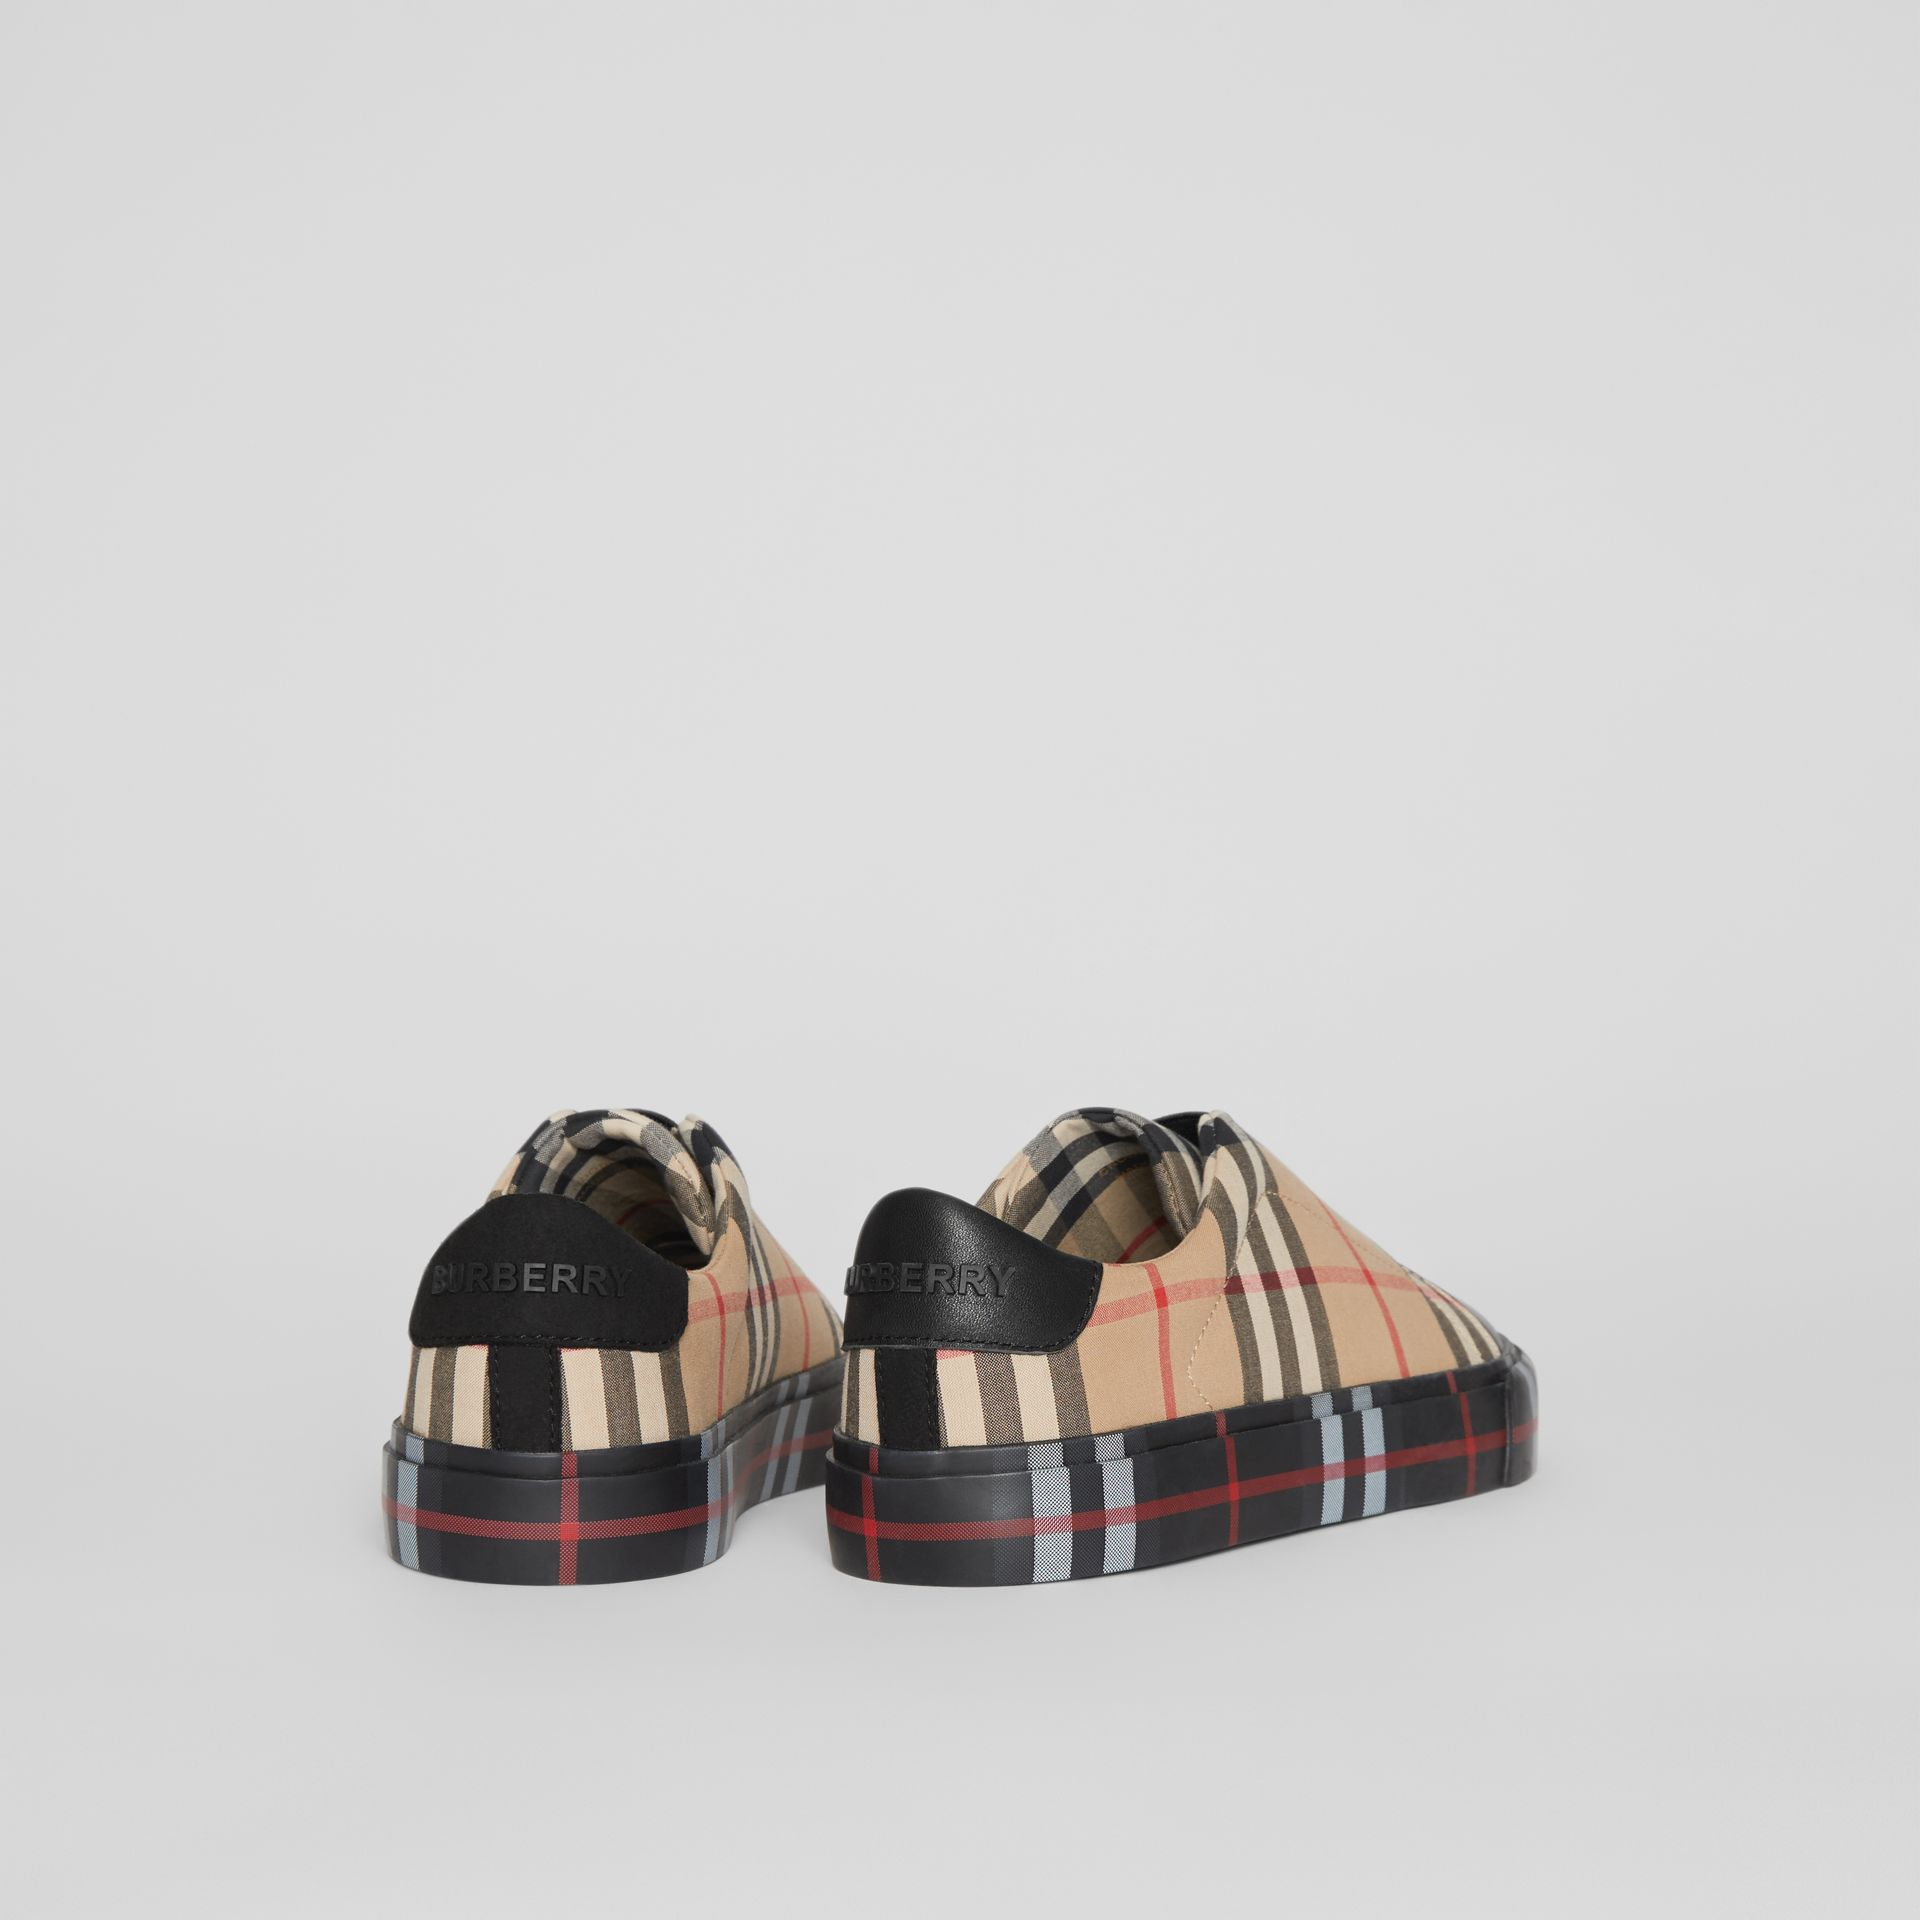 Contrast Check Slip-on Sneakers in Black/archive Beige - Children | Burberry United States - gallery image 2